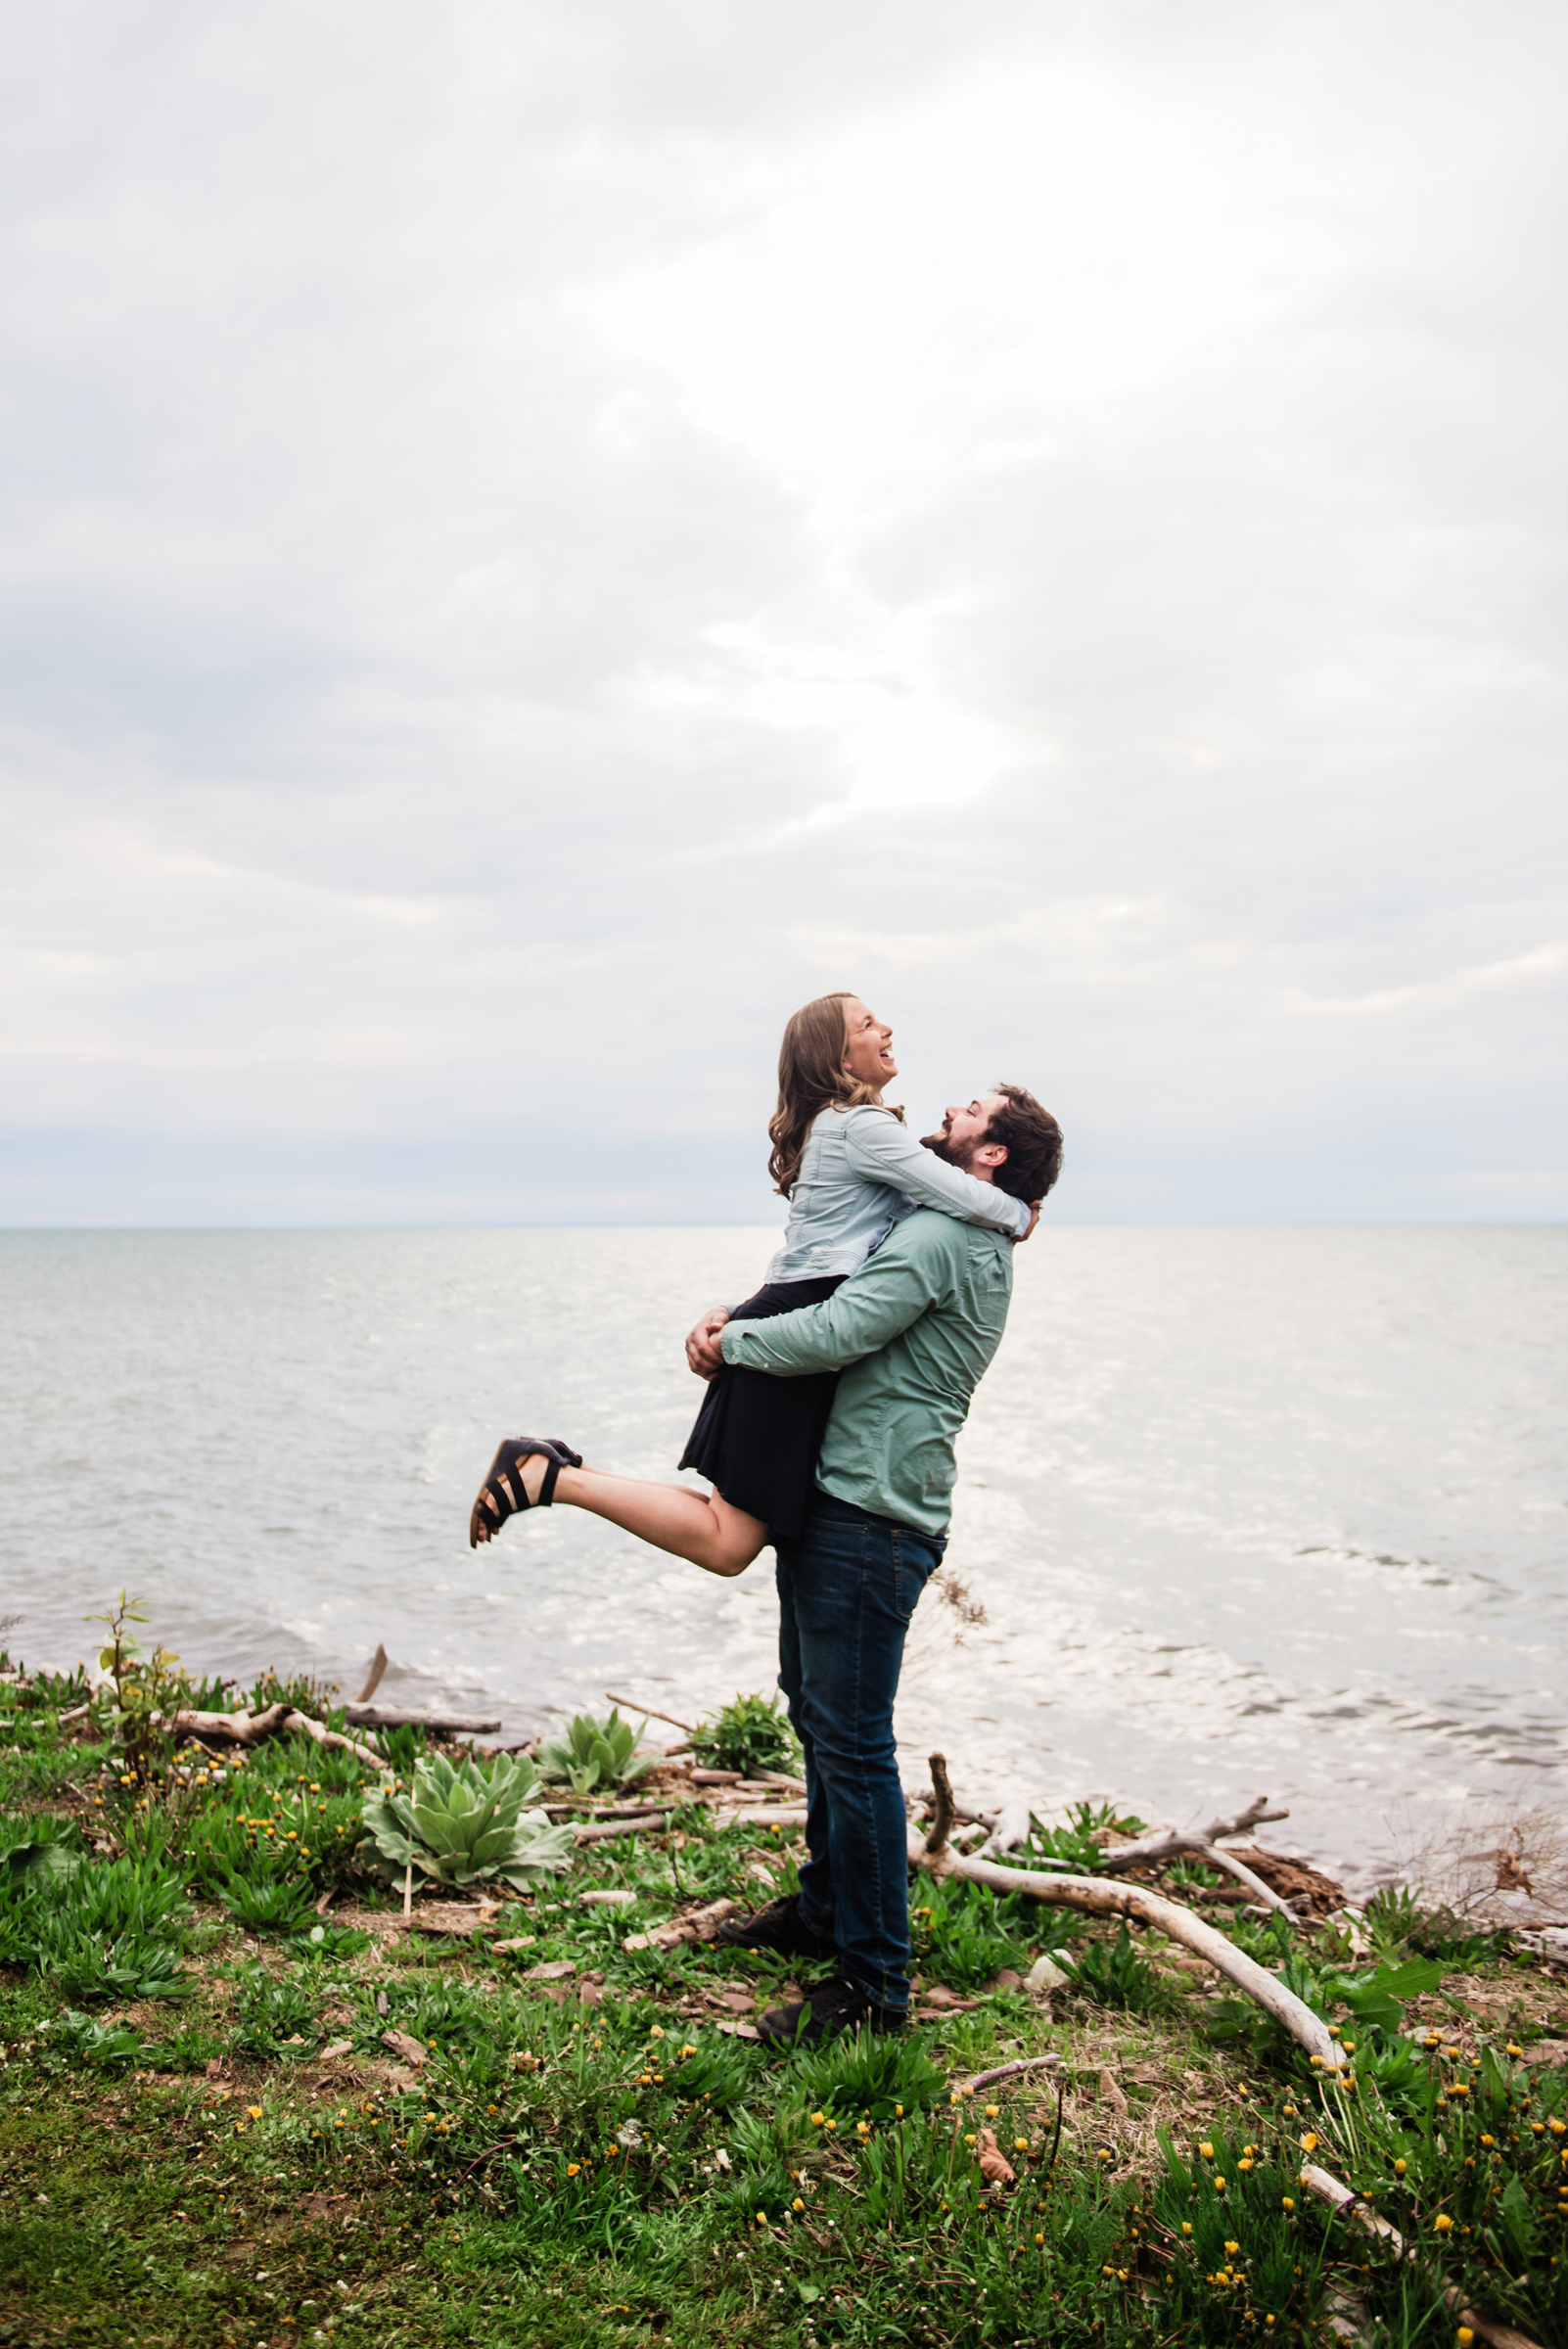 Fox_Farm_Rochester_Couples_Session_JILL_STUDIO_Rochester_NY_Photographer_DSC_7679.jpg